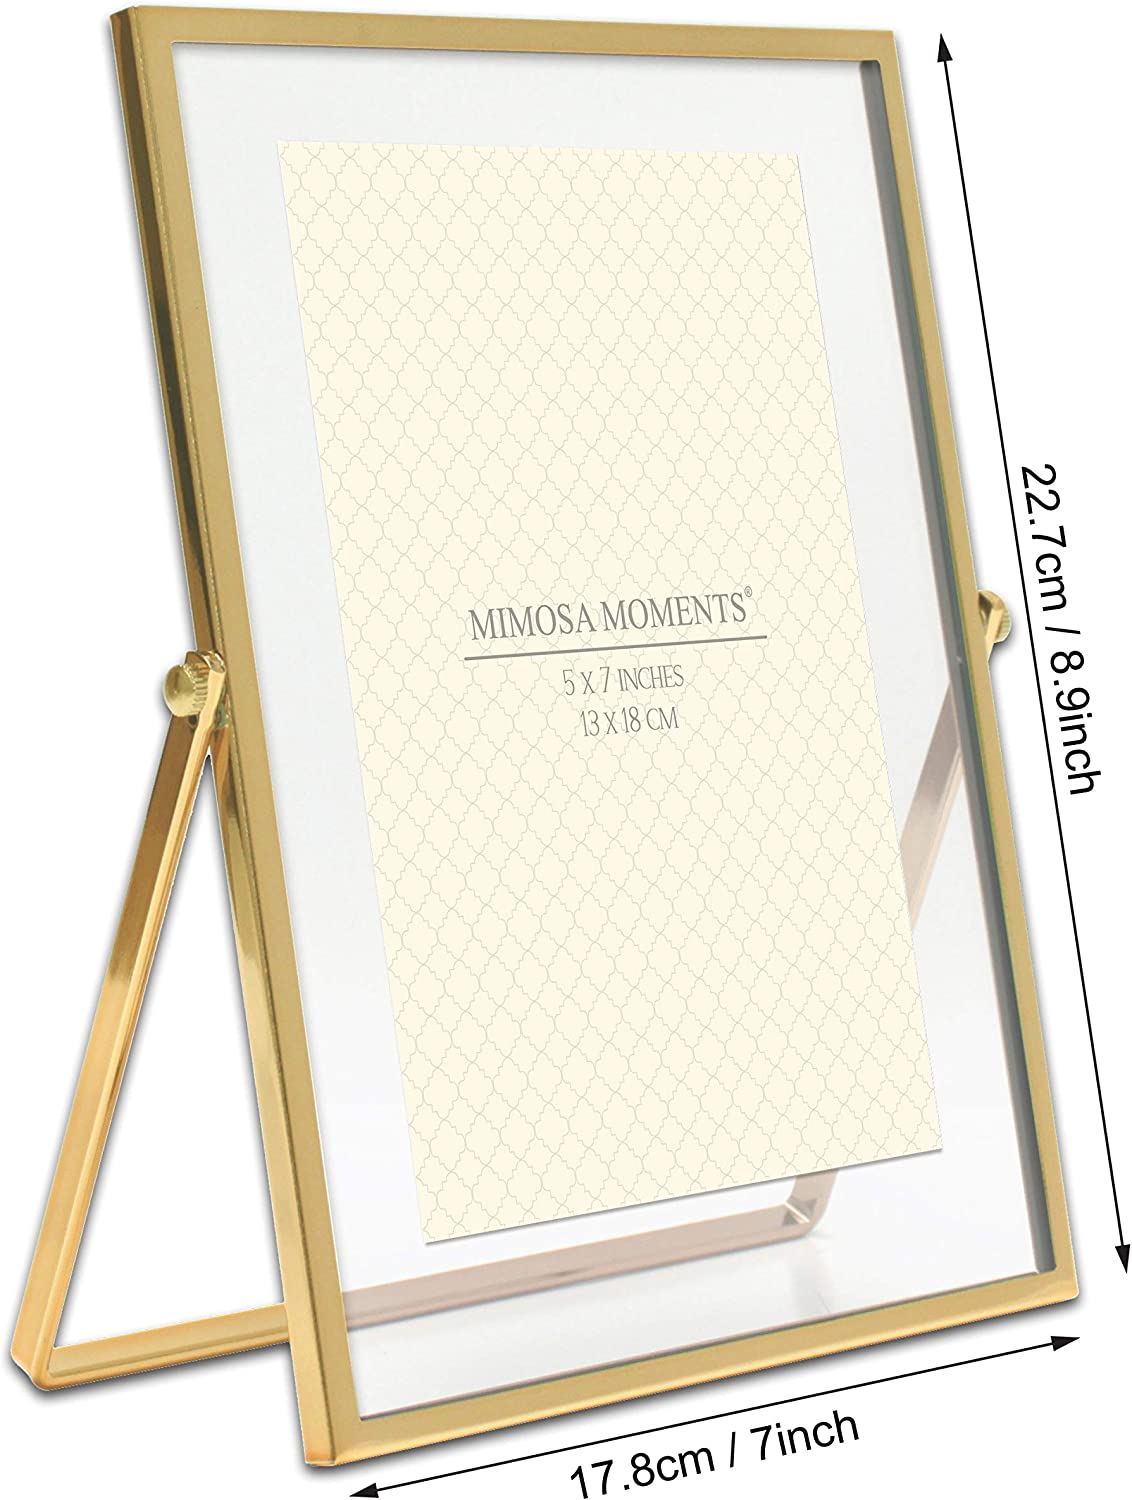 MIMOSA MOMENTS Gold Metal Floating Picture Frame Gold, 2x3